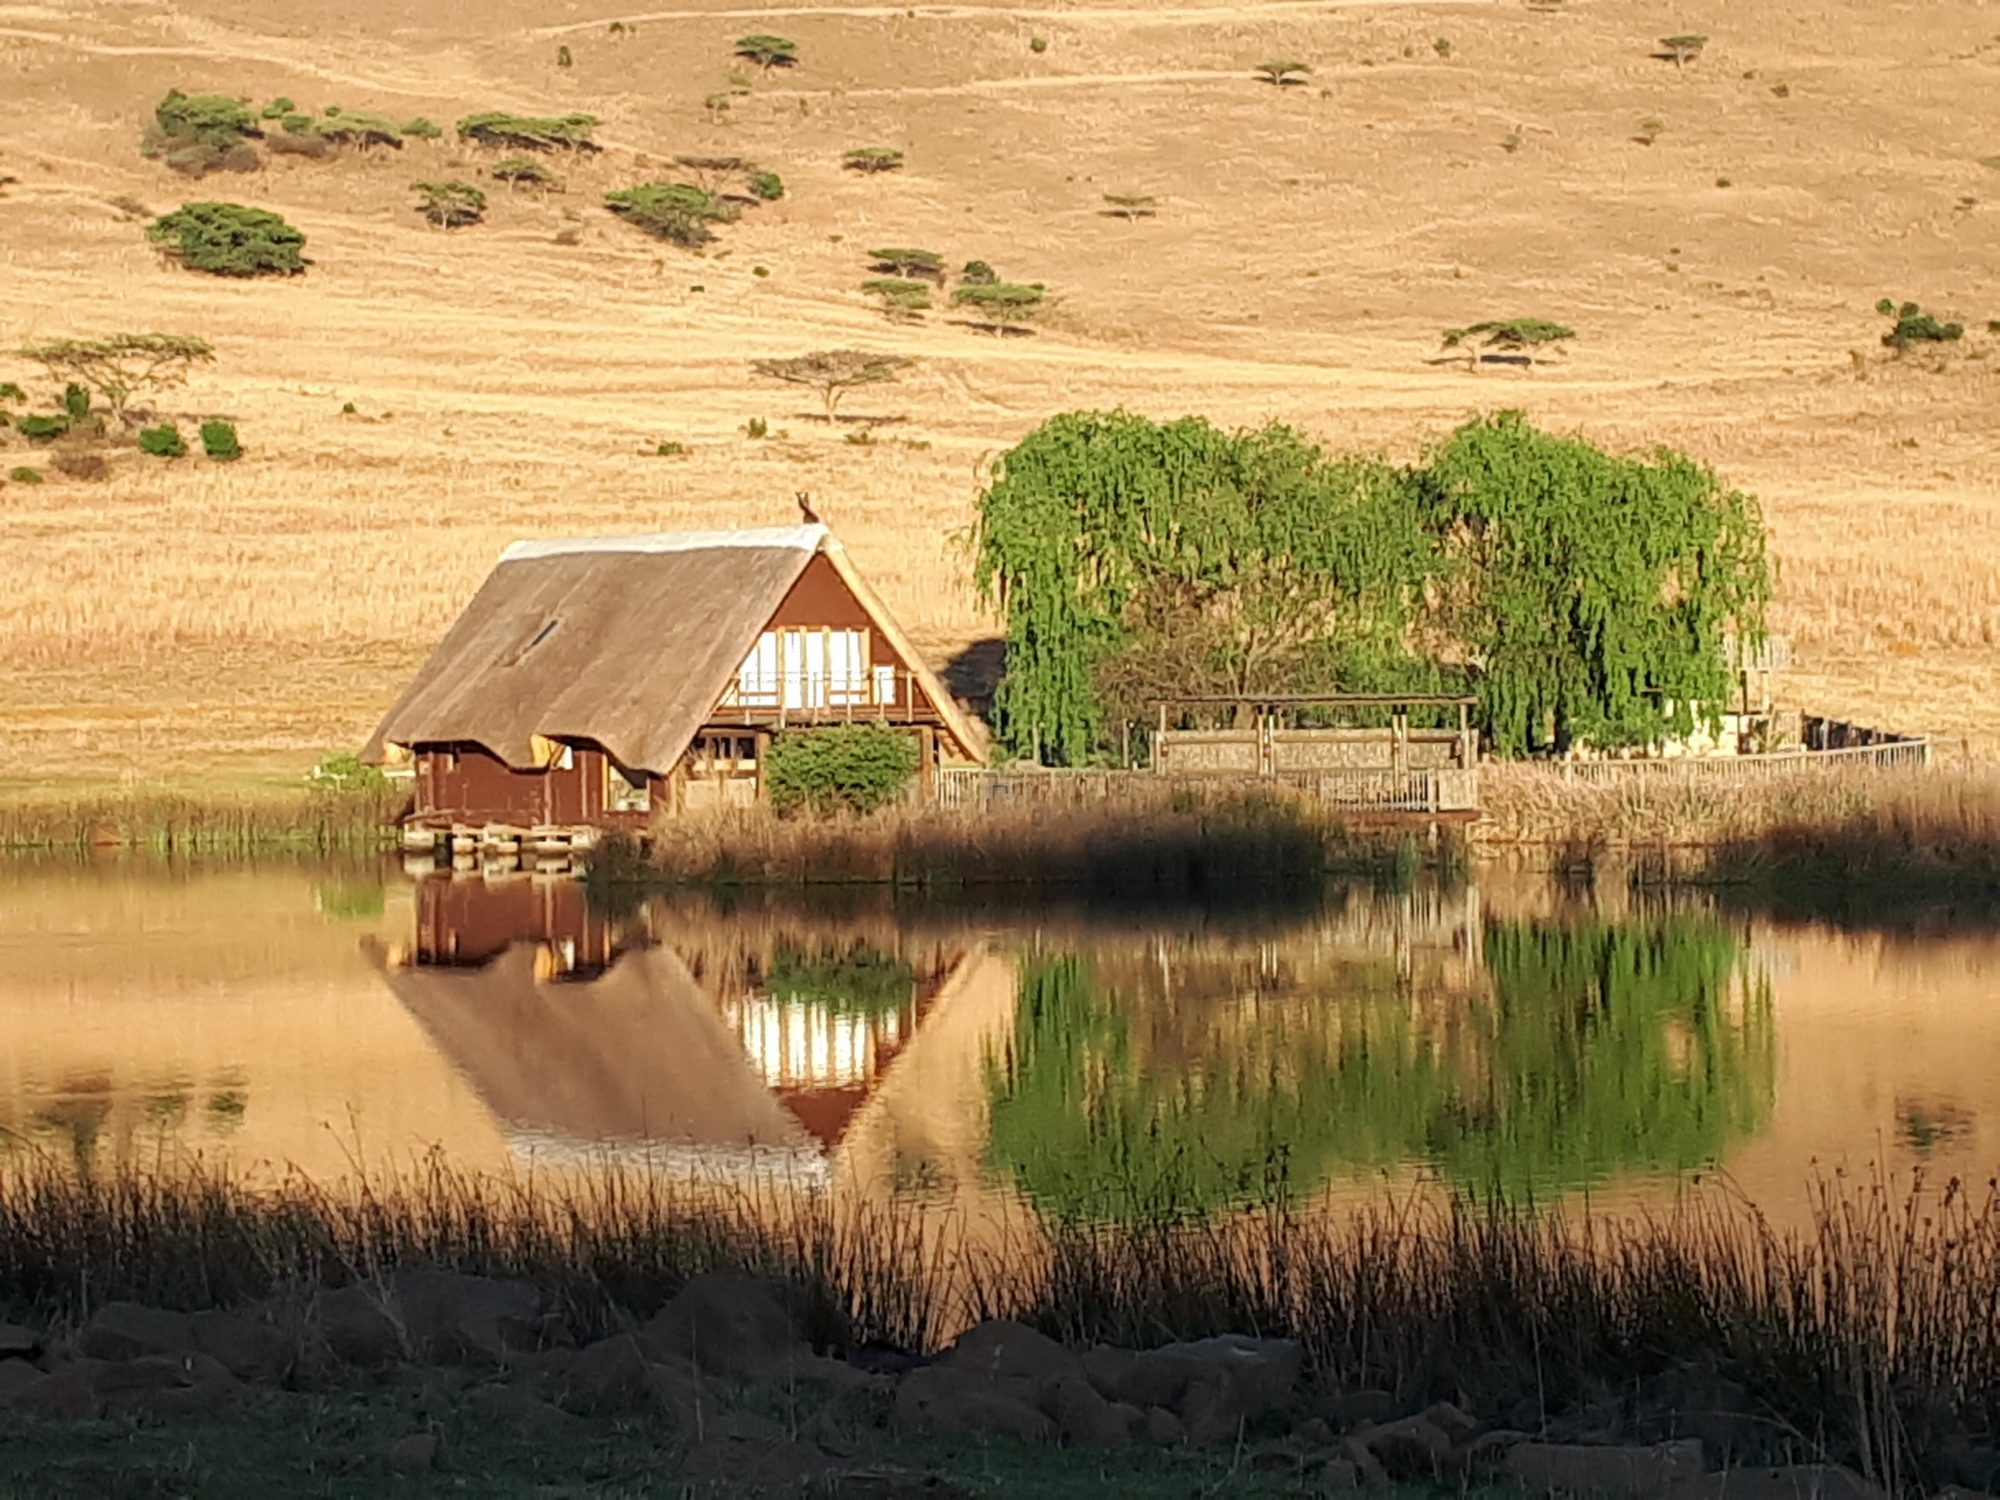 Thatcher's Rest, Self-Catering Cottage - Ladysmith, KwaZulu-Natal (3)